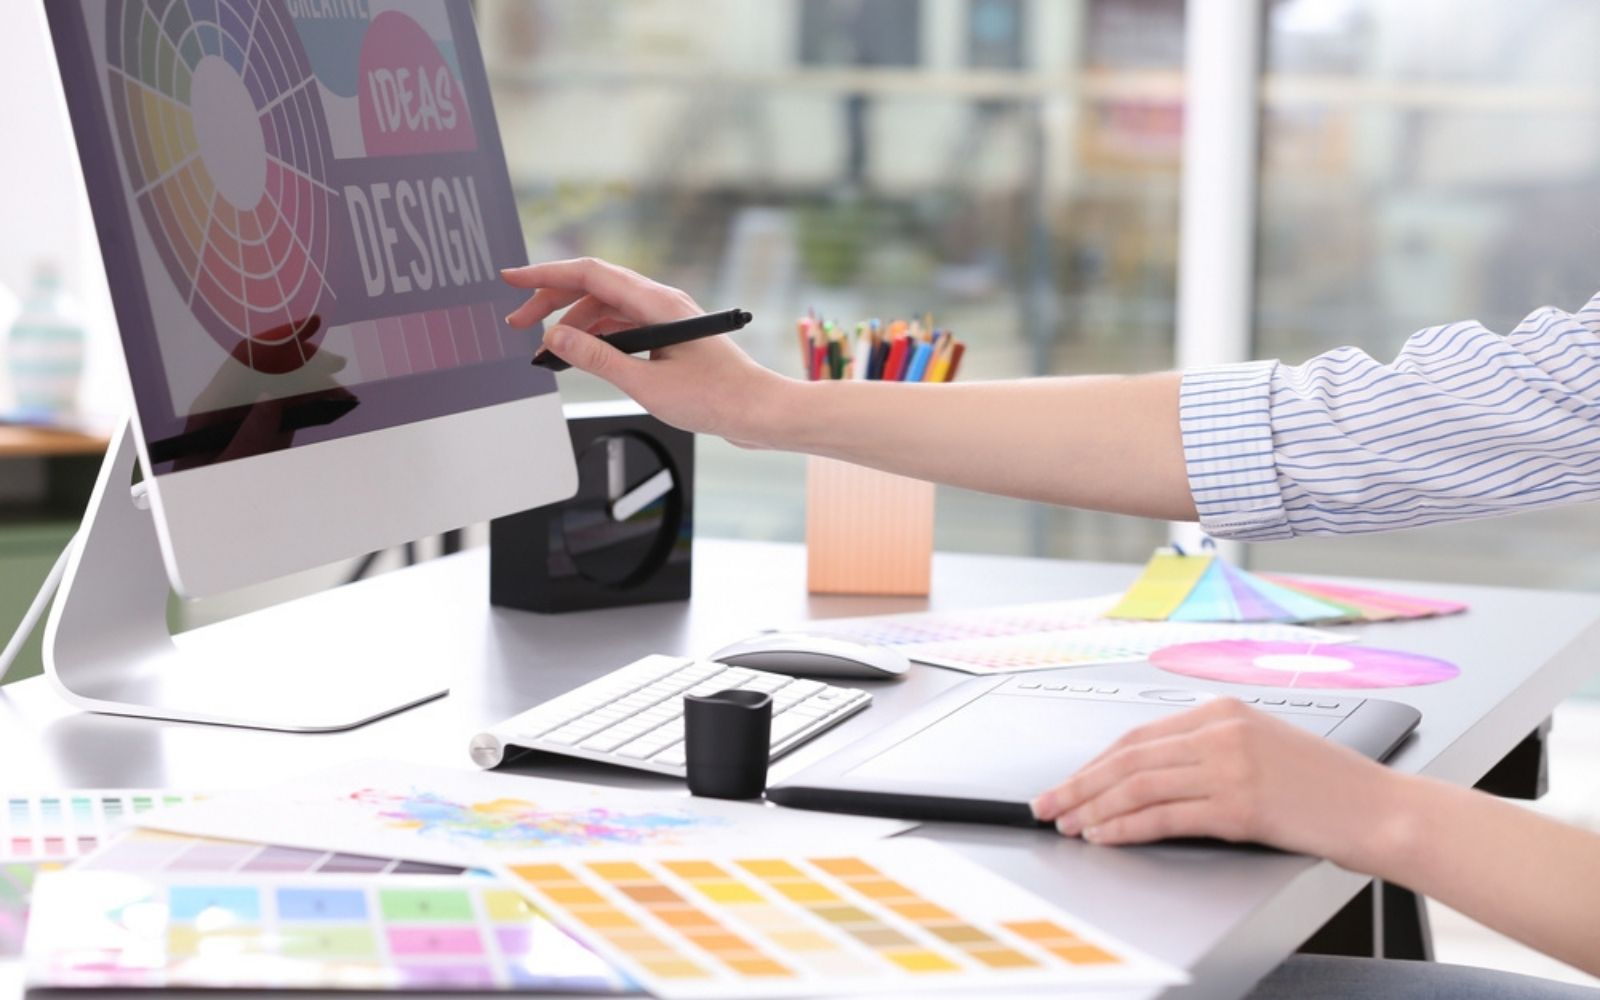 Best Graphic Design Software (Free and Paid)